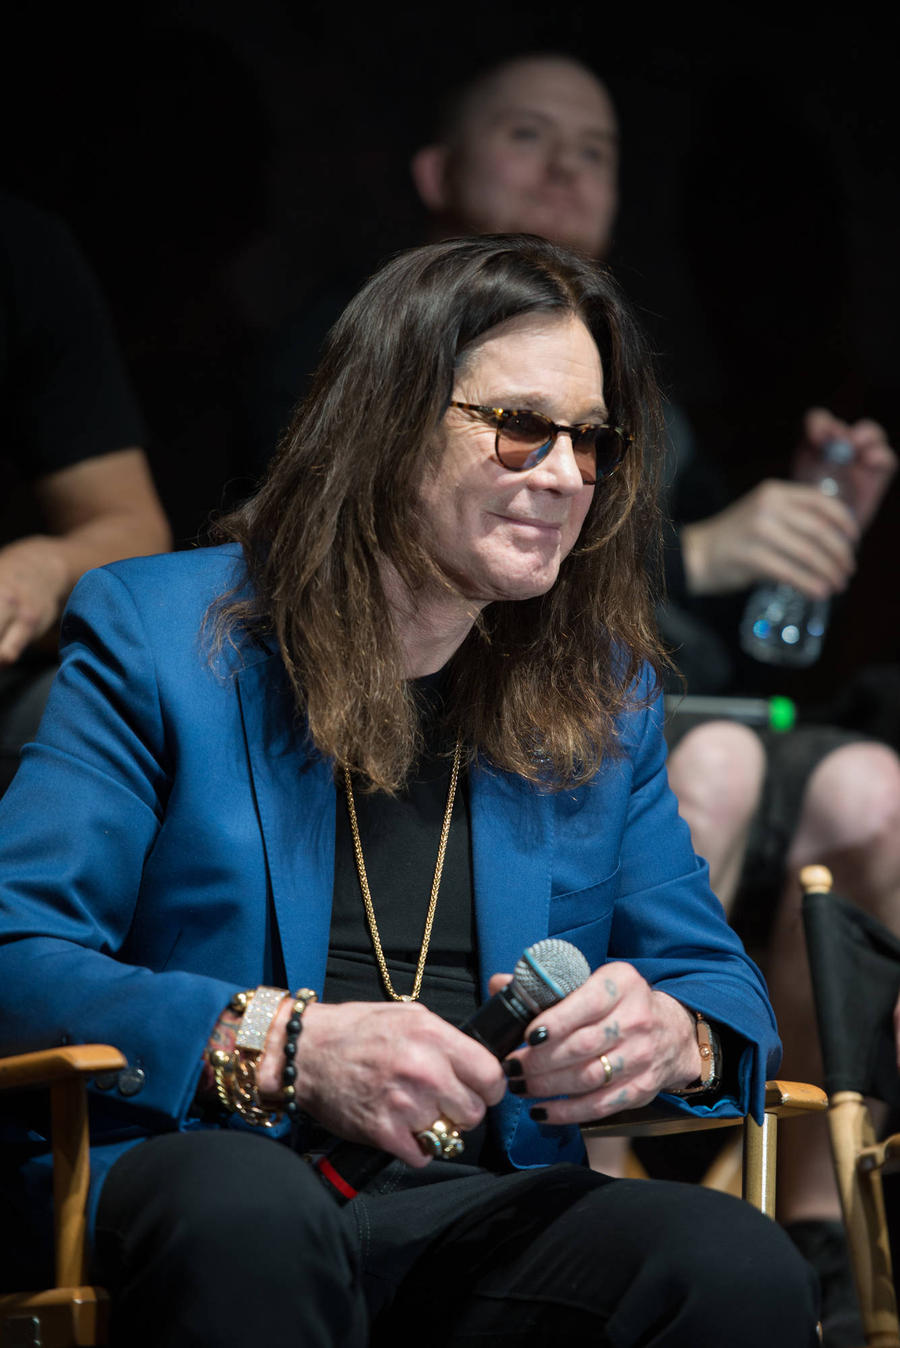 Ozzy Osbourne: 'Tony Iommi Was Right To Kick Me Out Of Black Sabbath'